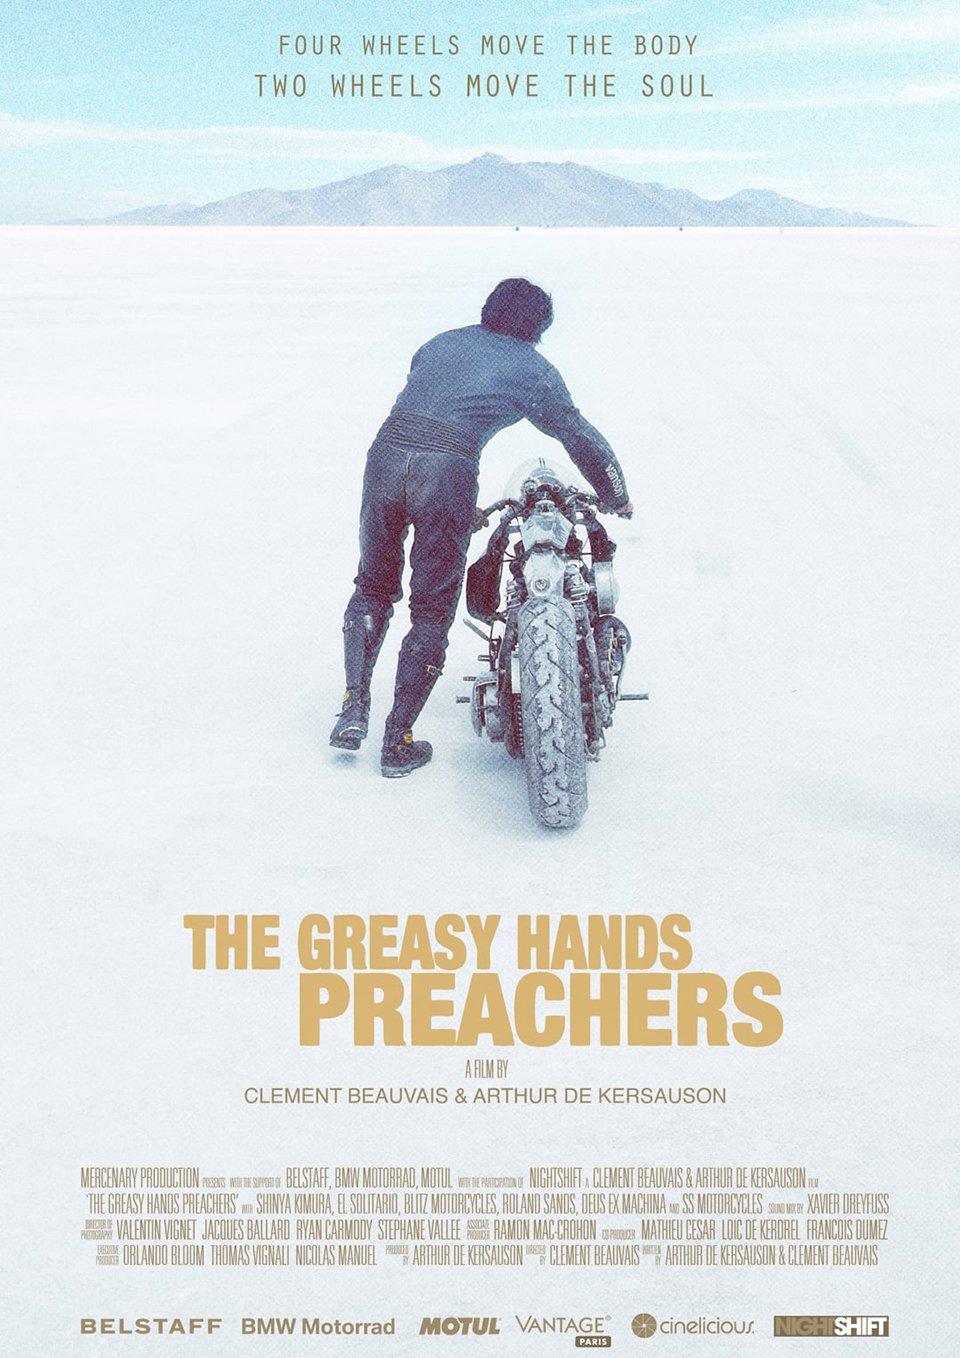 The Greasy Hands Preachers (Trailer)